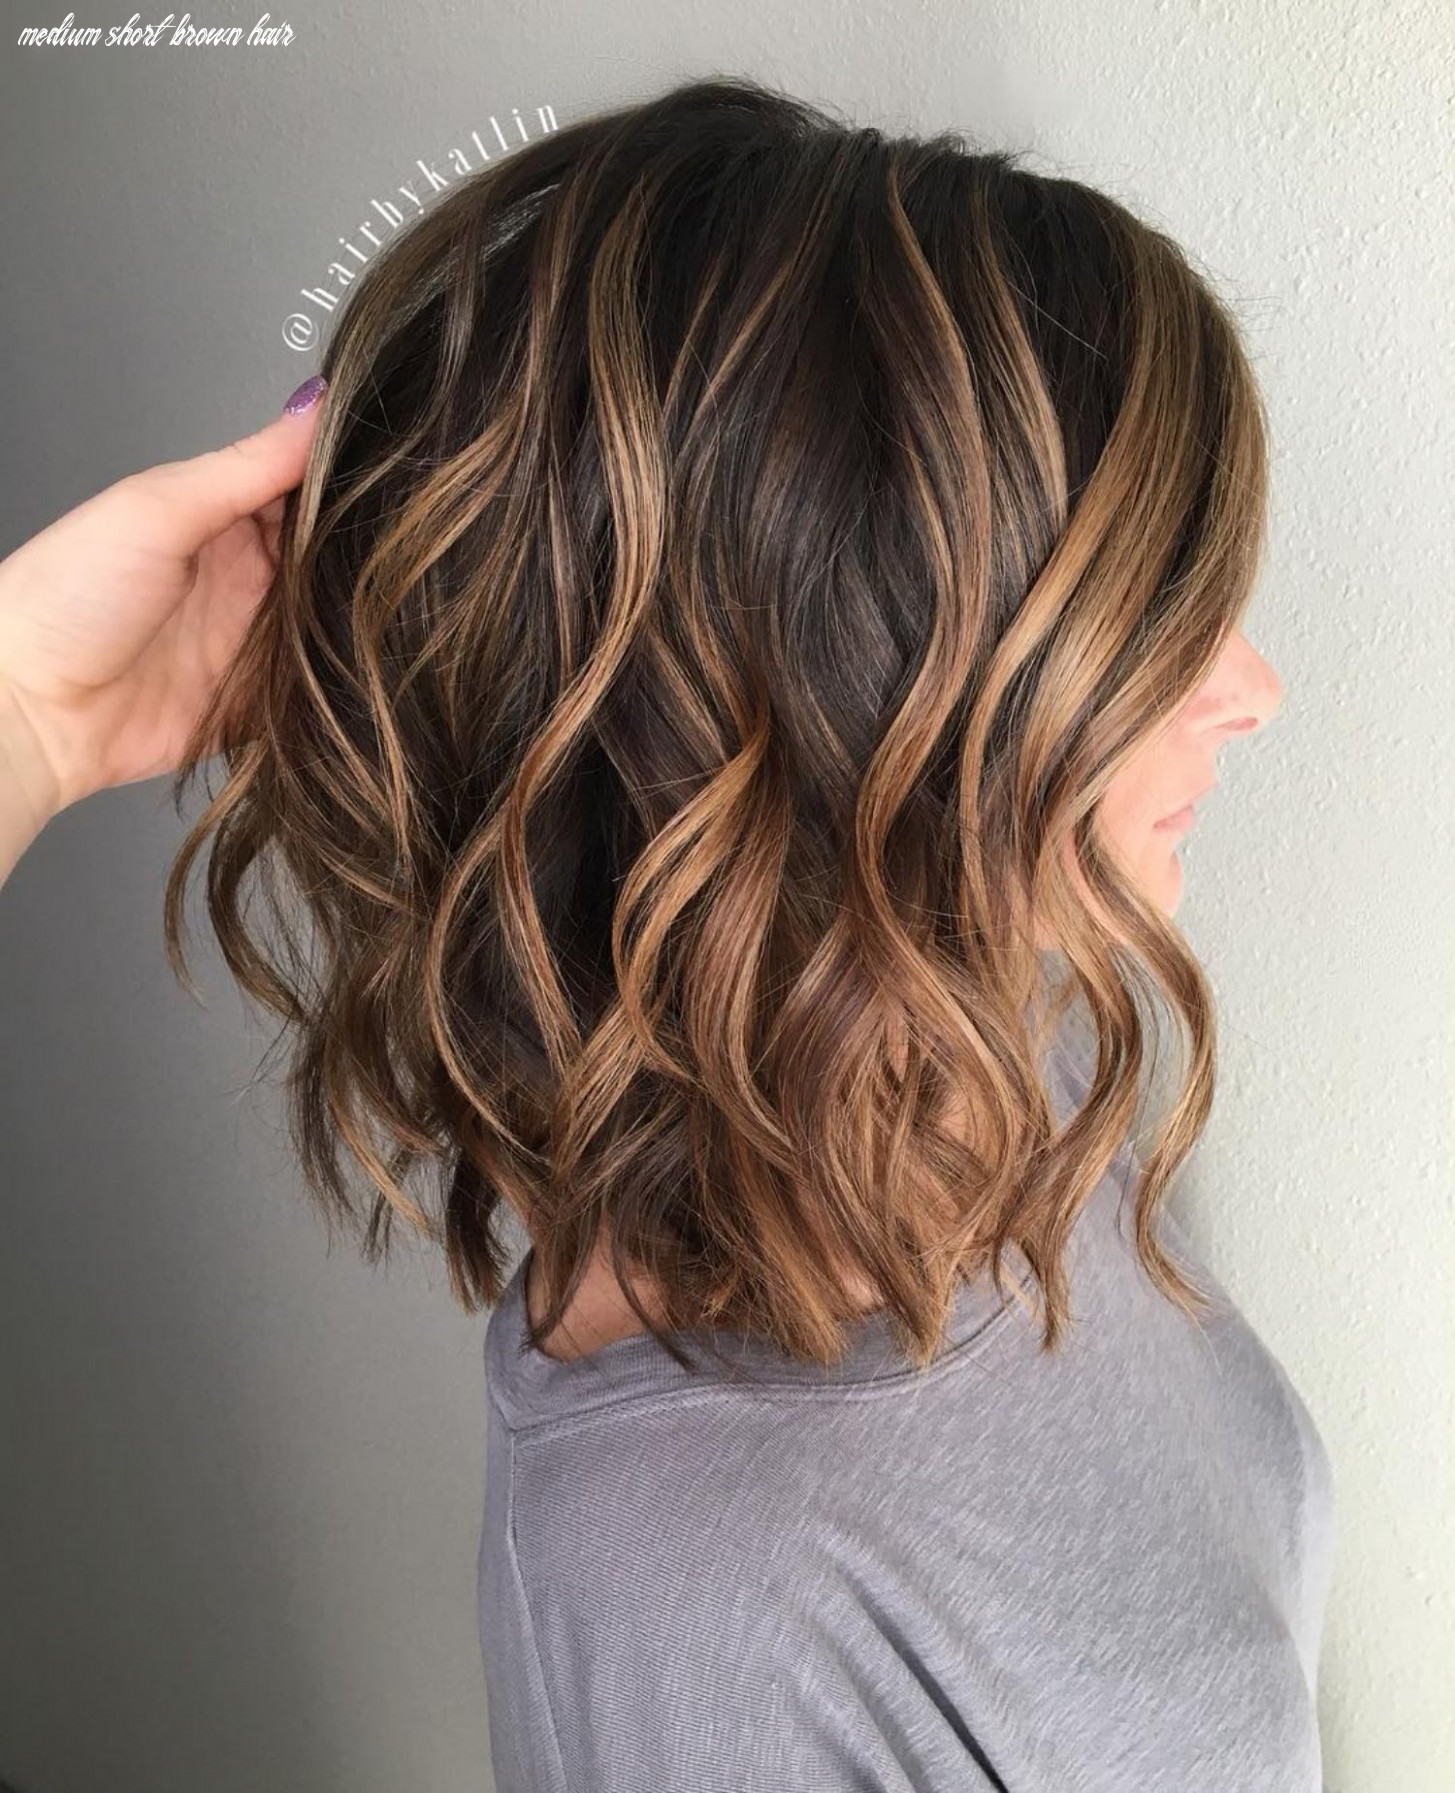 8 fun and flattering medium hairstyles for women | medium hair styles medium short brown hair